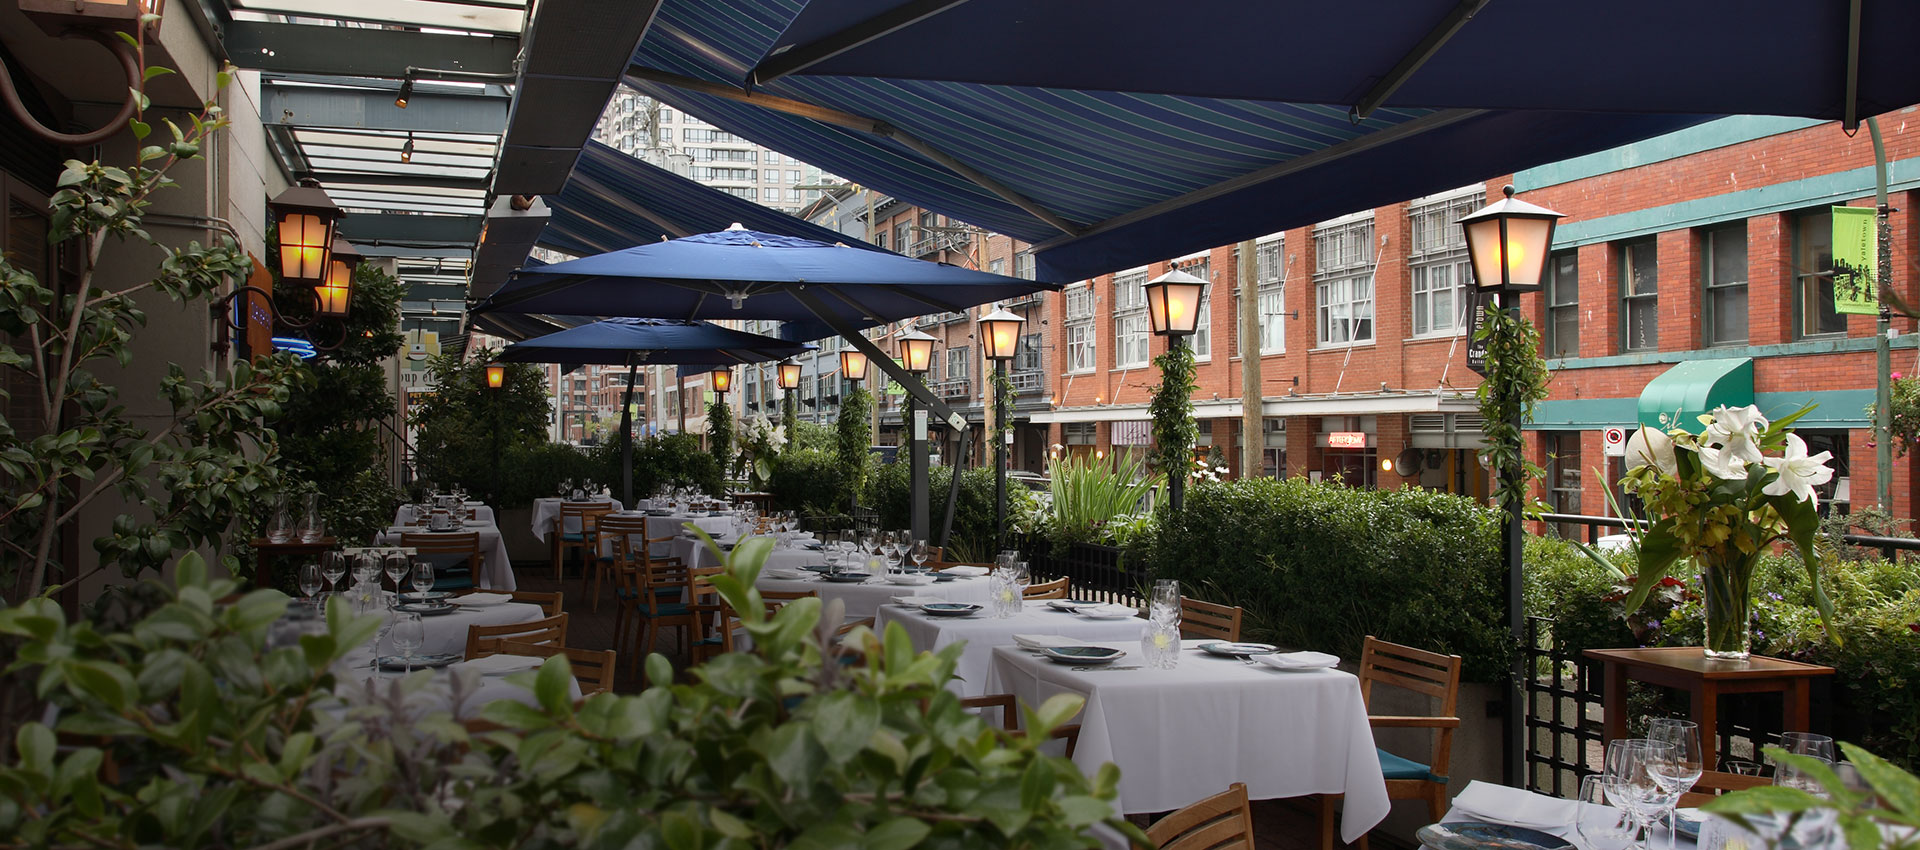 Food + Hospitality | Aquilini Investment Group